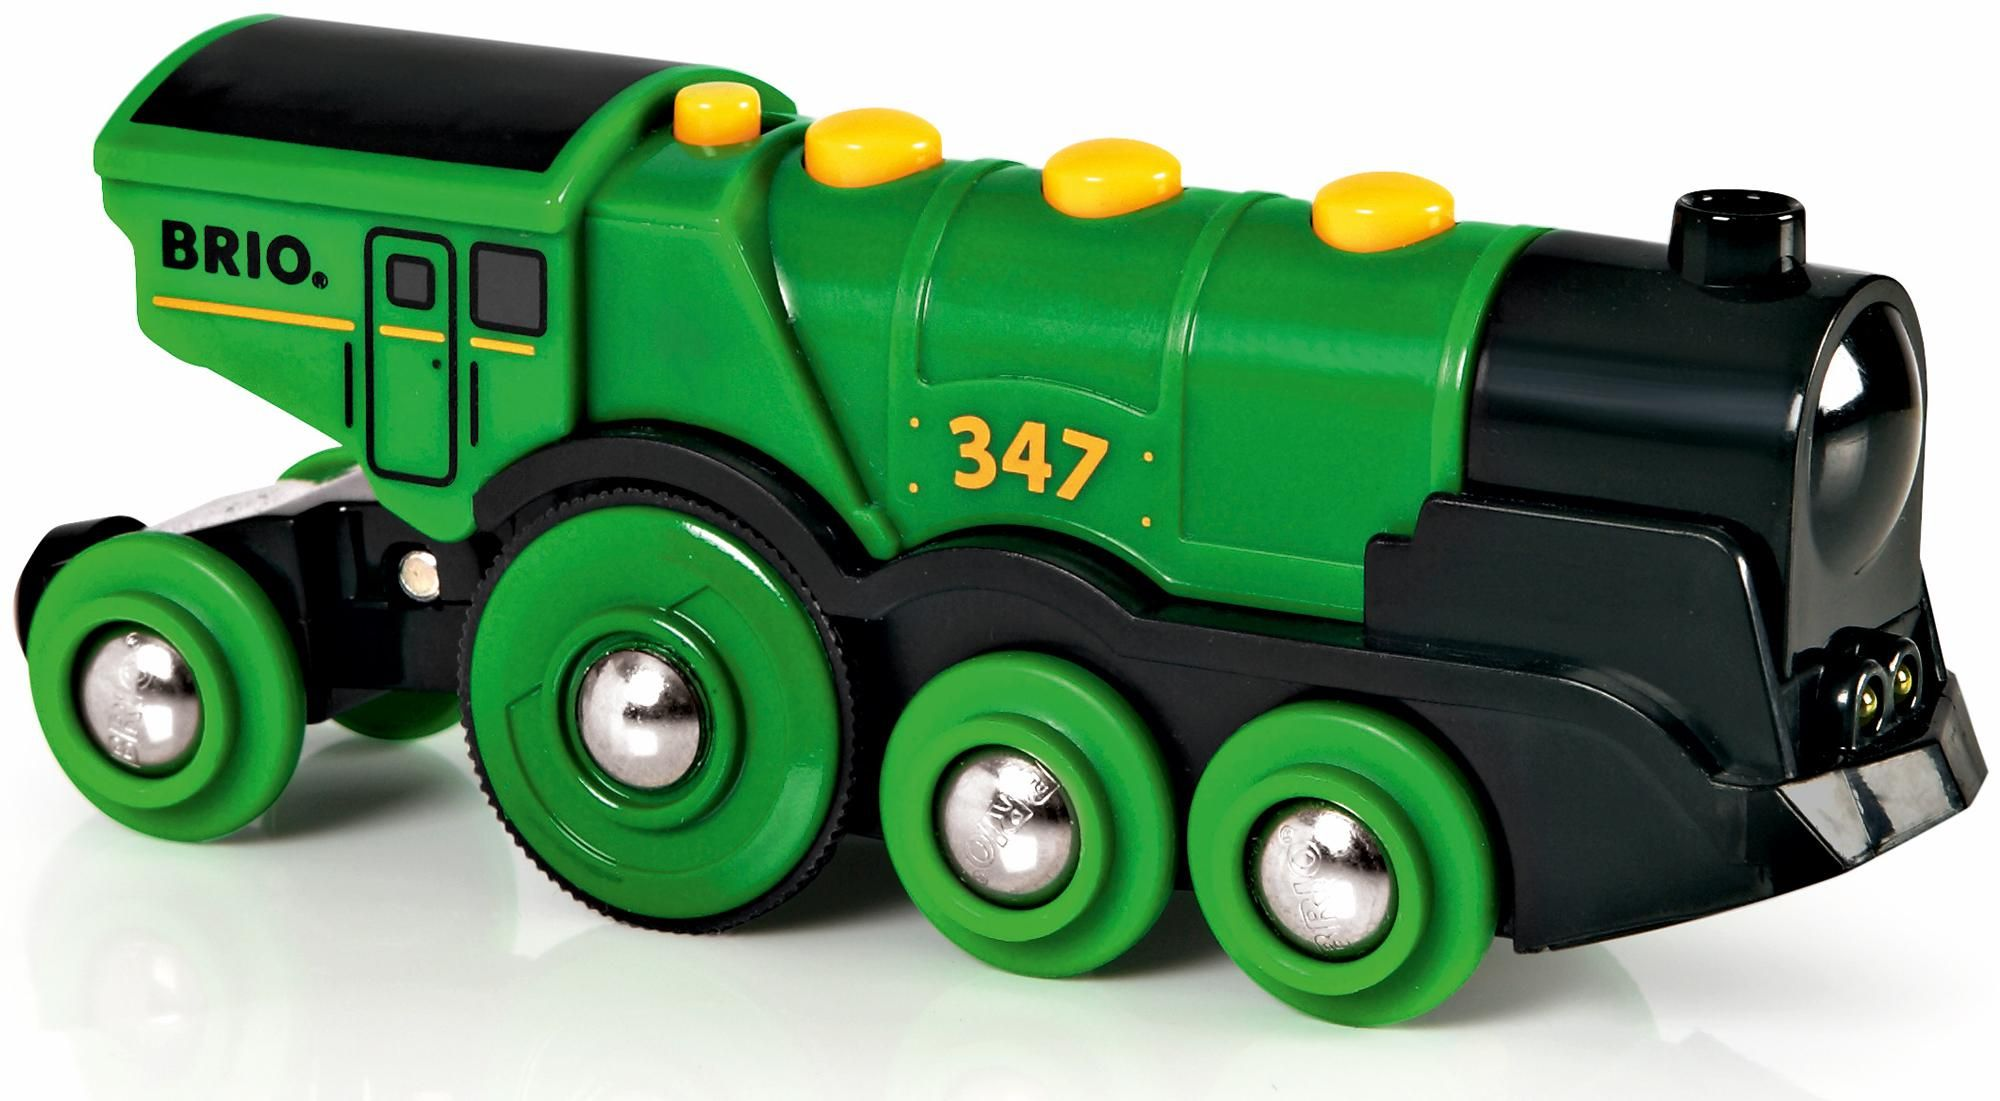 BRIO Battery Powered Big Green Action Locomotive 33593 for Wooden Train Set